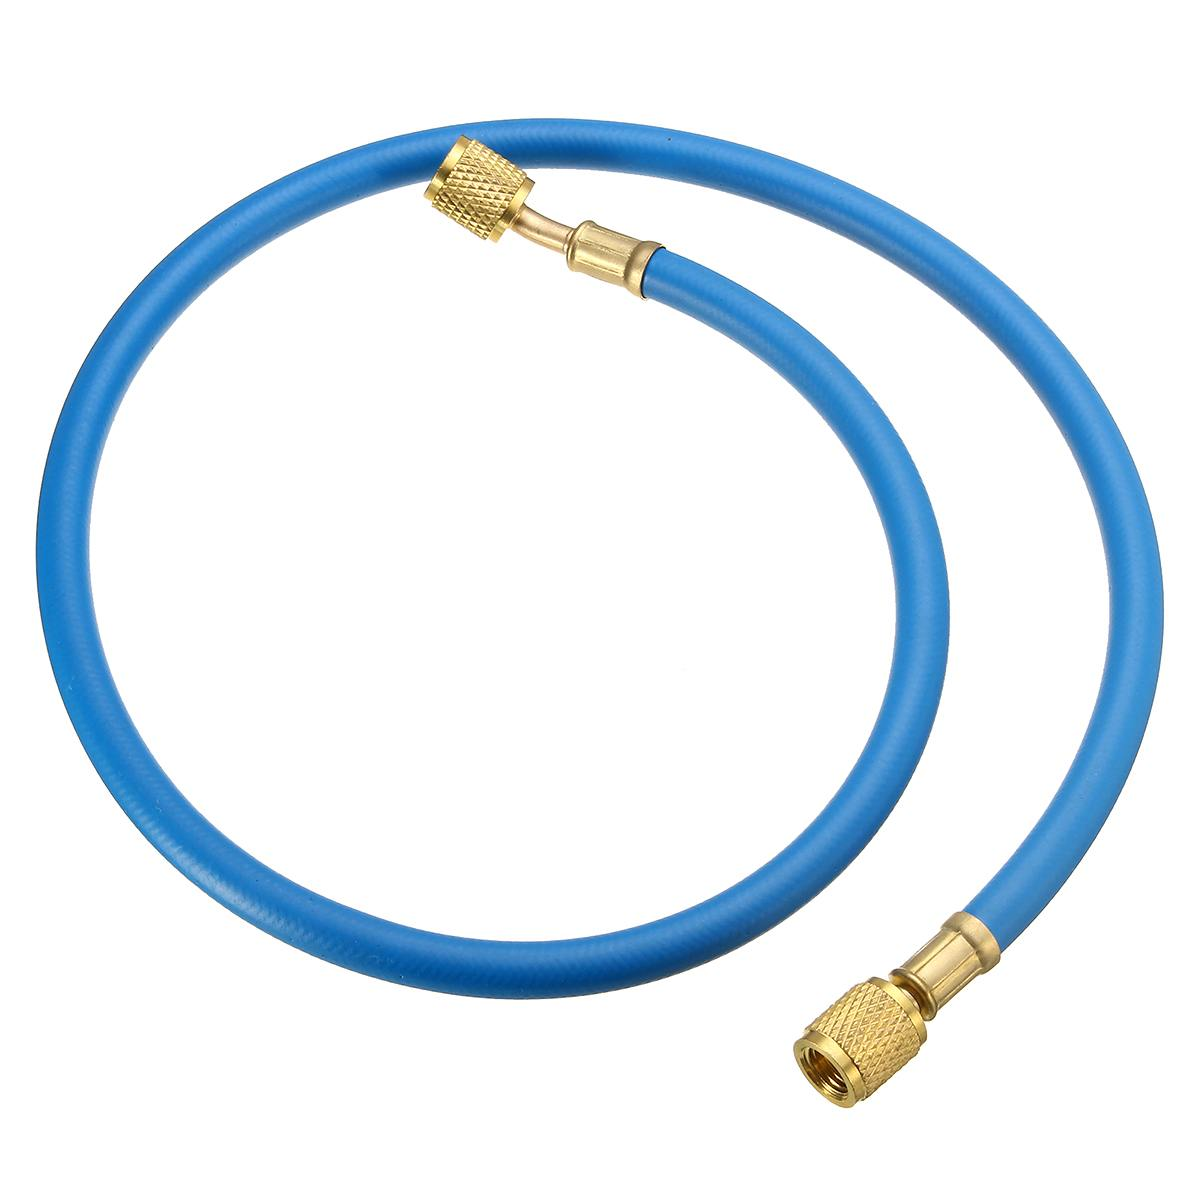 R134A Car Charging Hose 90CM Refrigerant Measuring Recharge Adapter Coolant Pipe 15MM for R410a <font><b>R22</b></font> R12 1/4